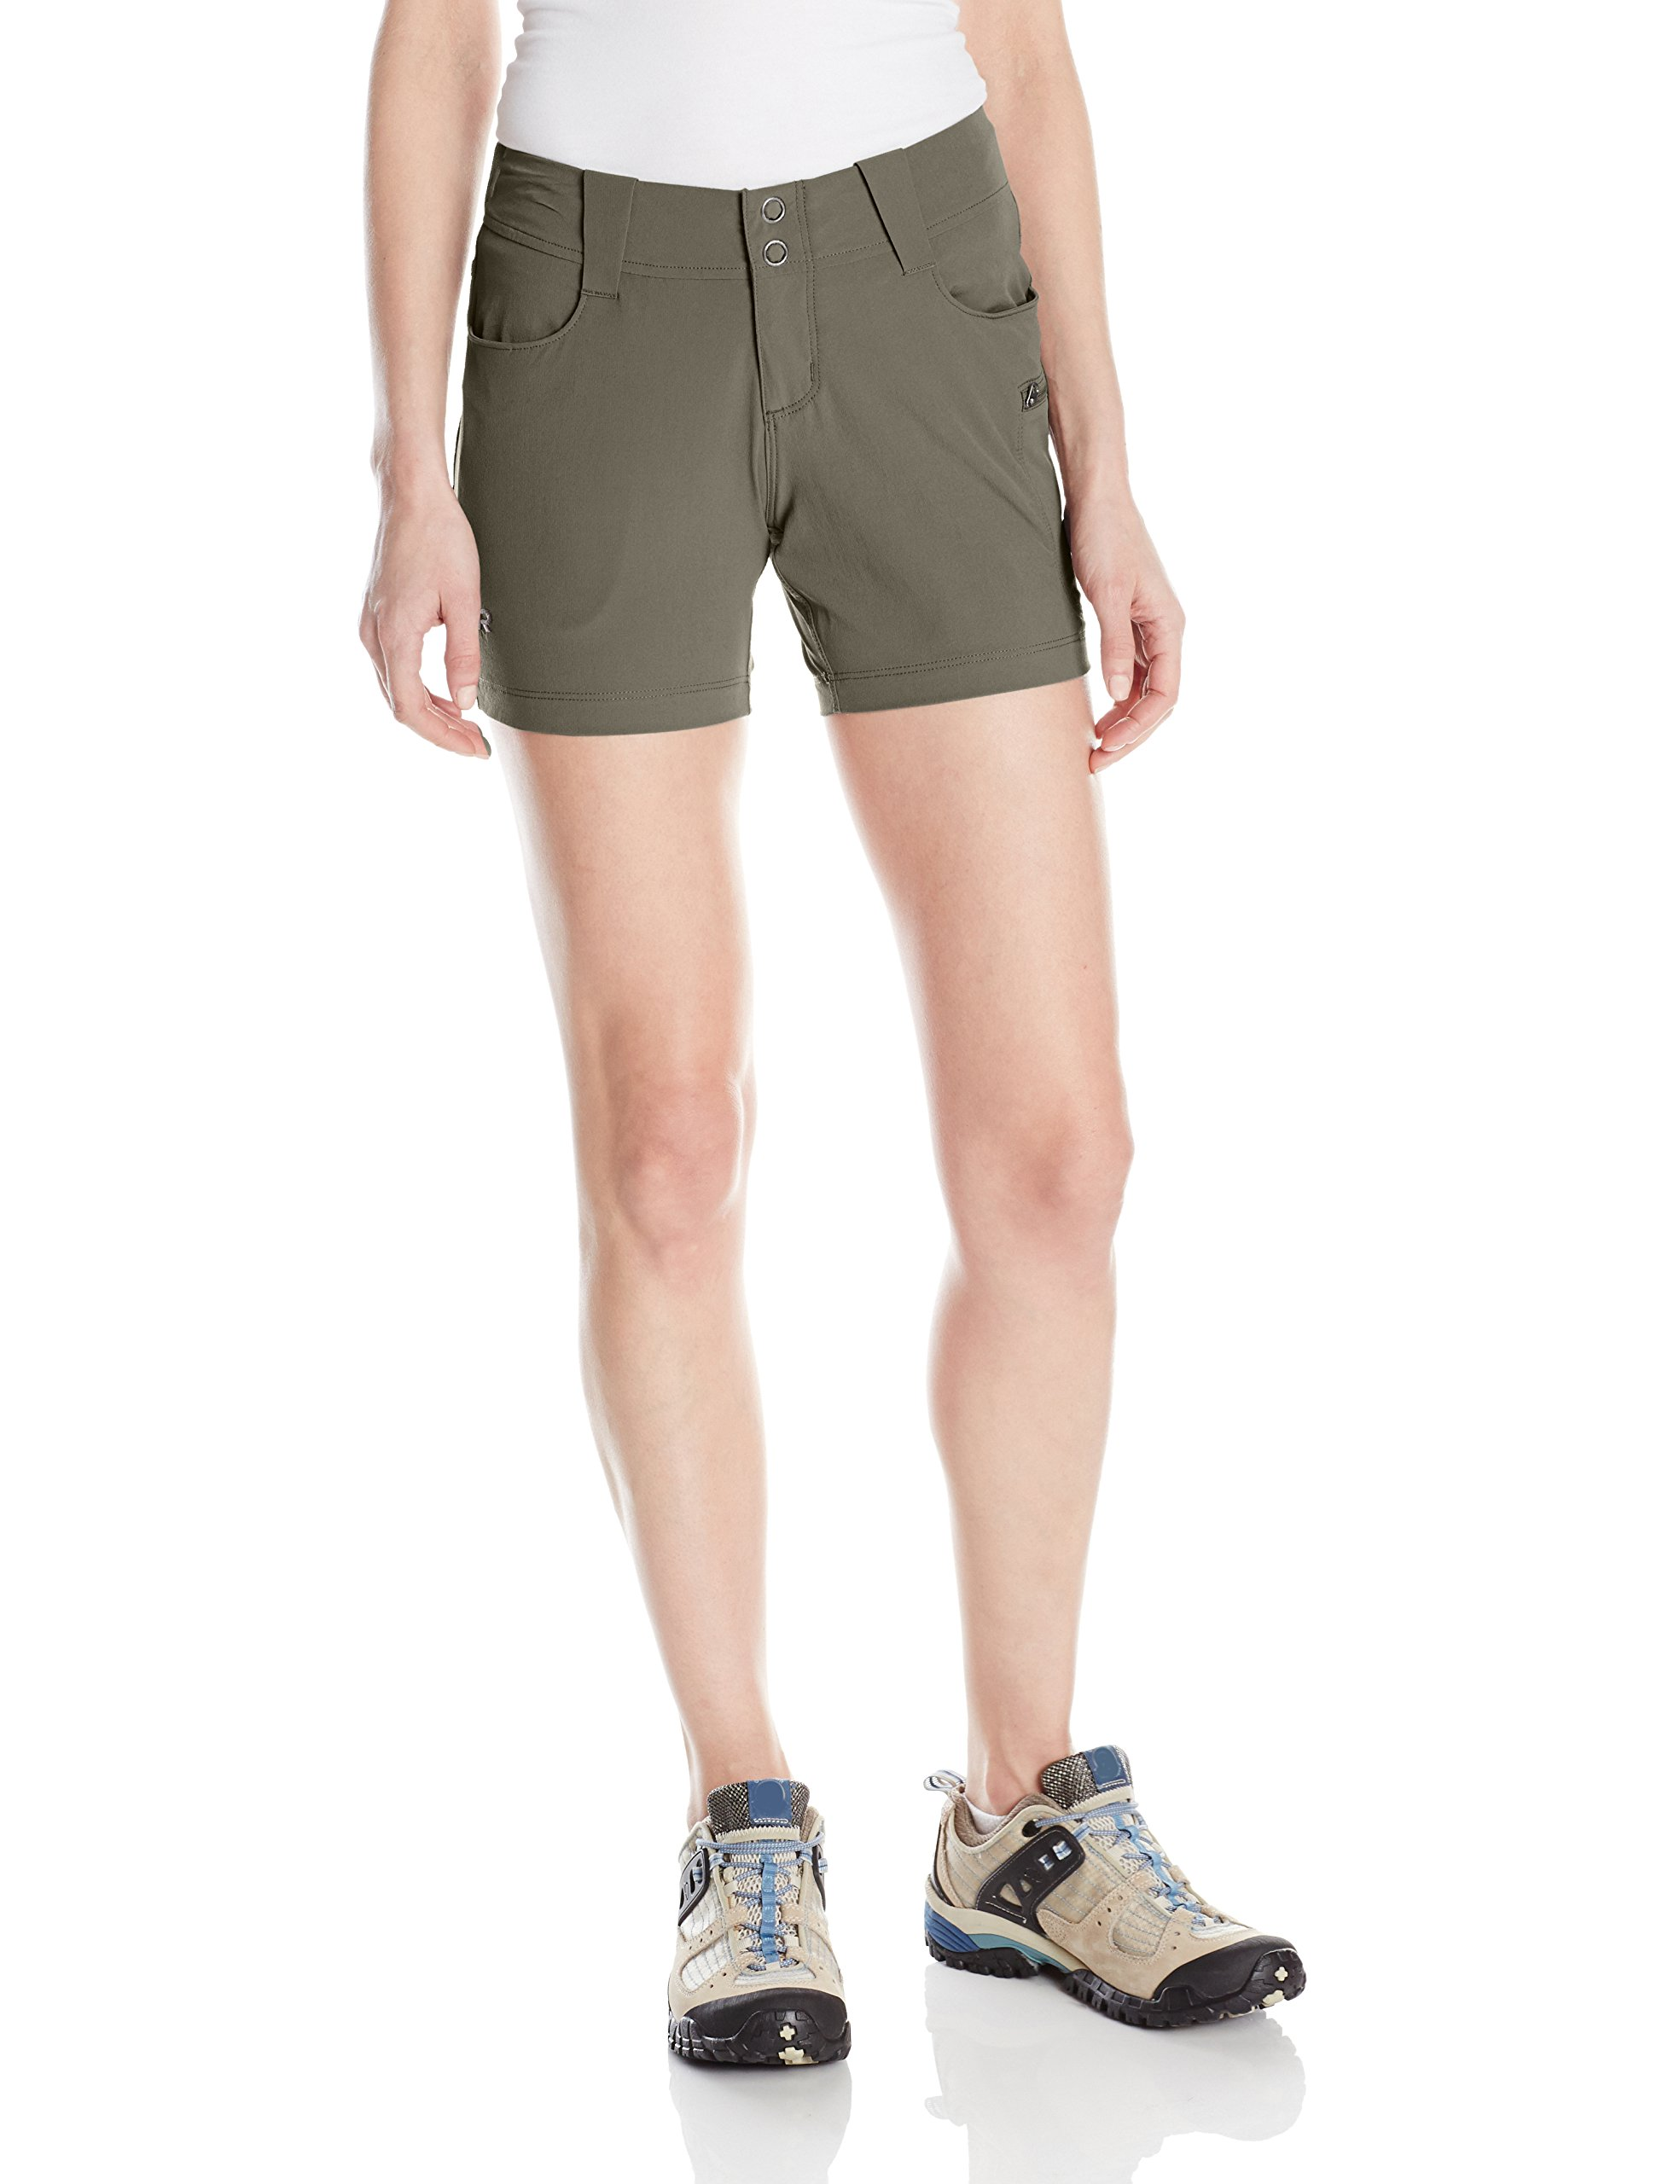 Outdoor Research Women's Ferrosi Summit Shorts, Mushroom, 6 by Outdoor Research